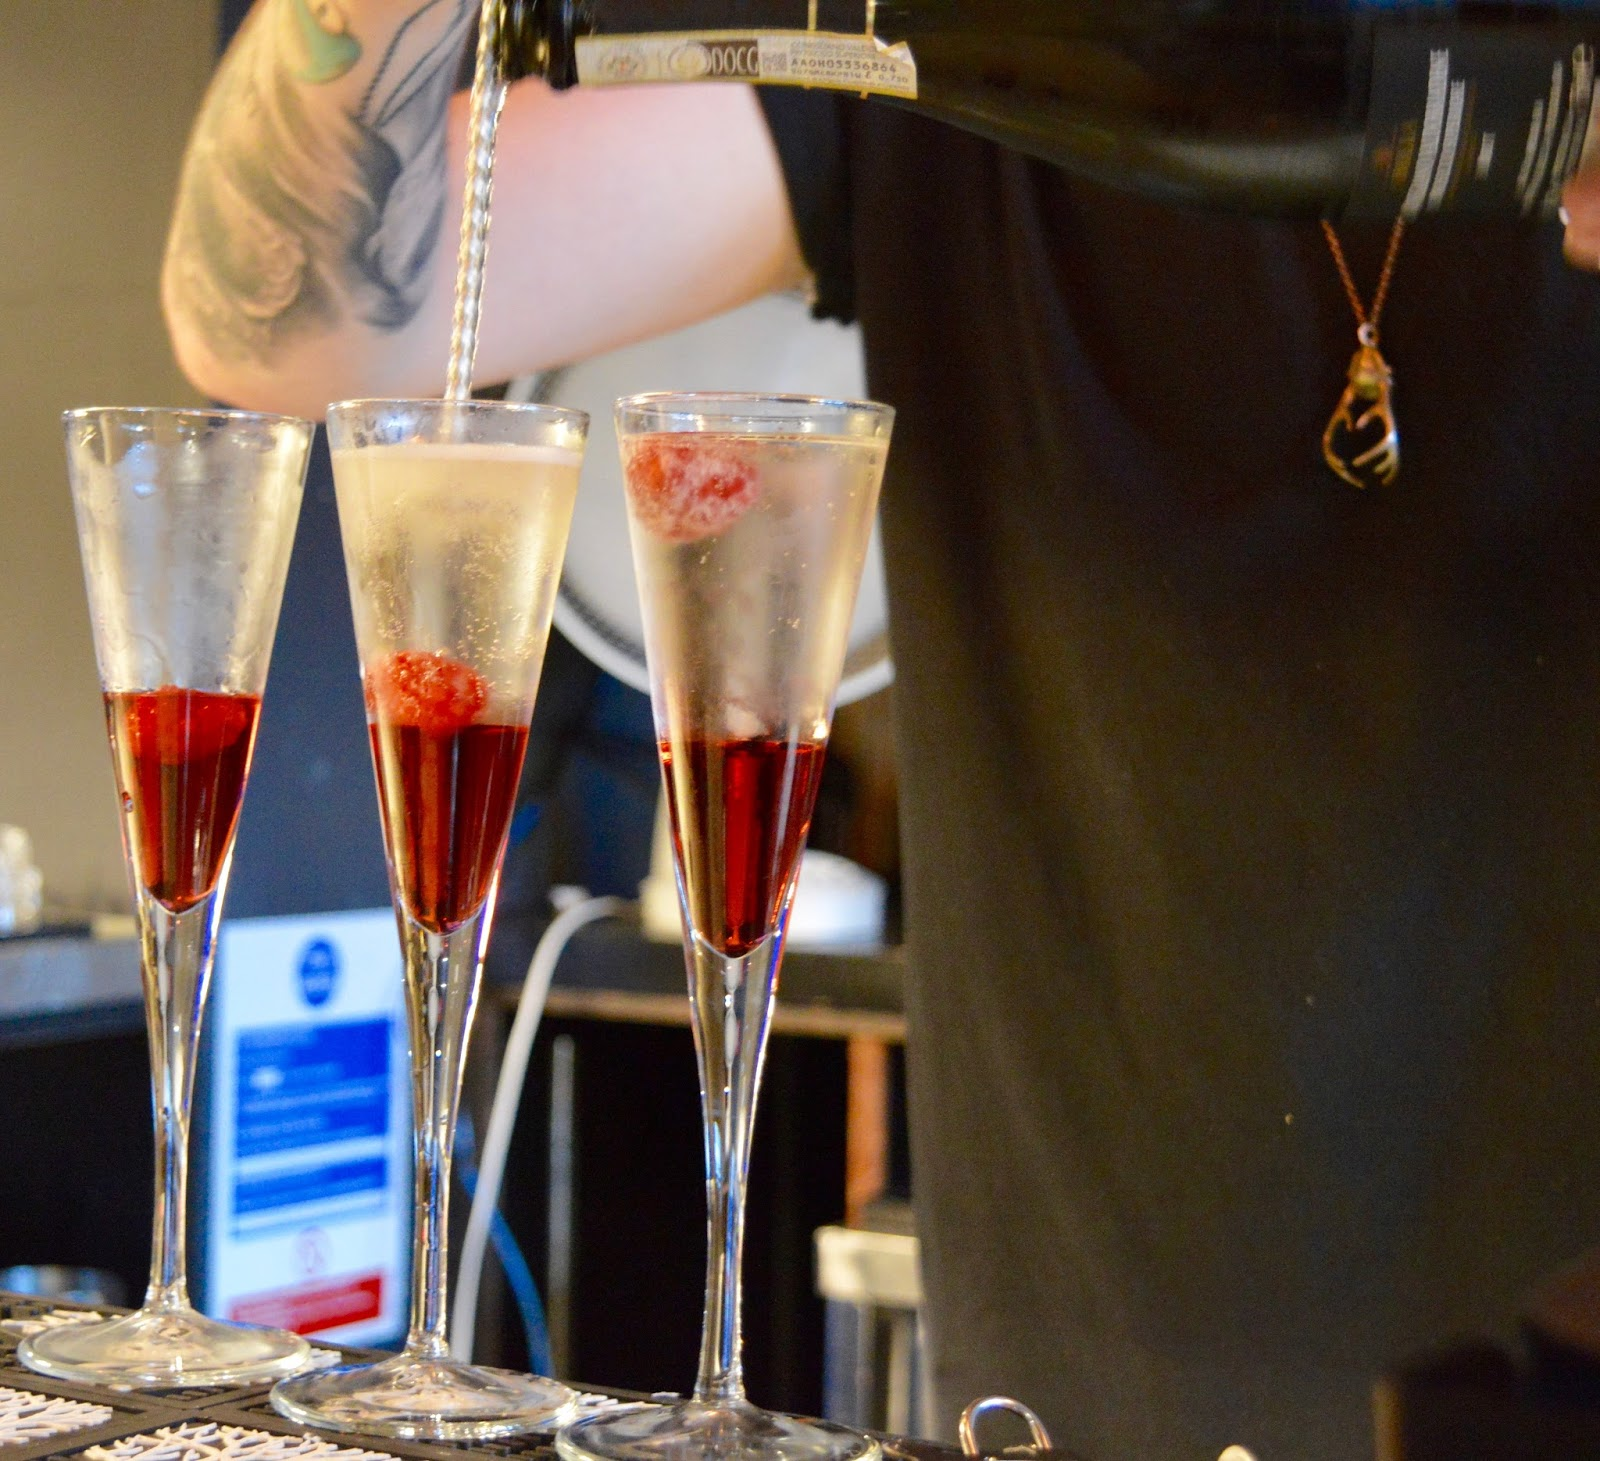 Cocktail Masterclass at Jalou - Kir Royale